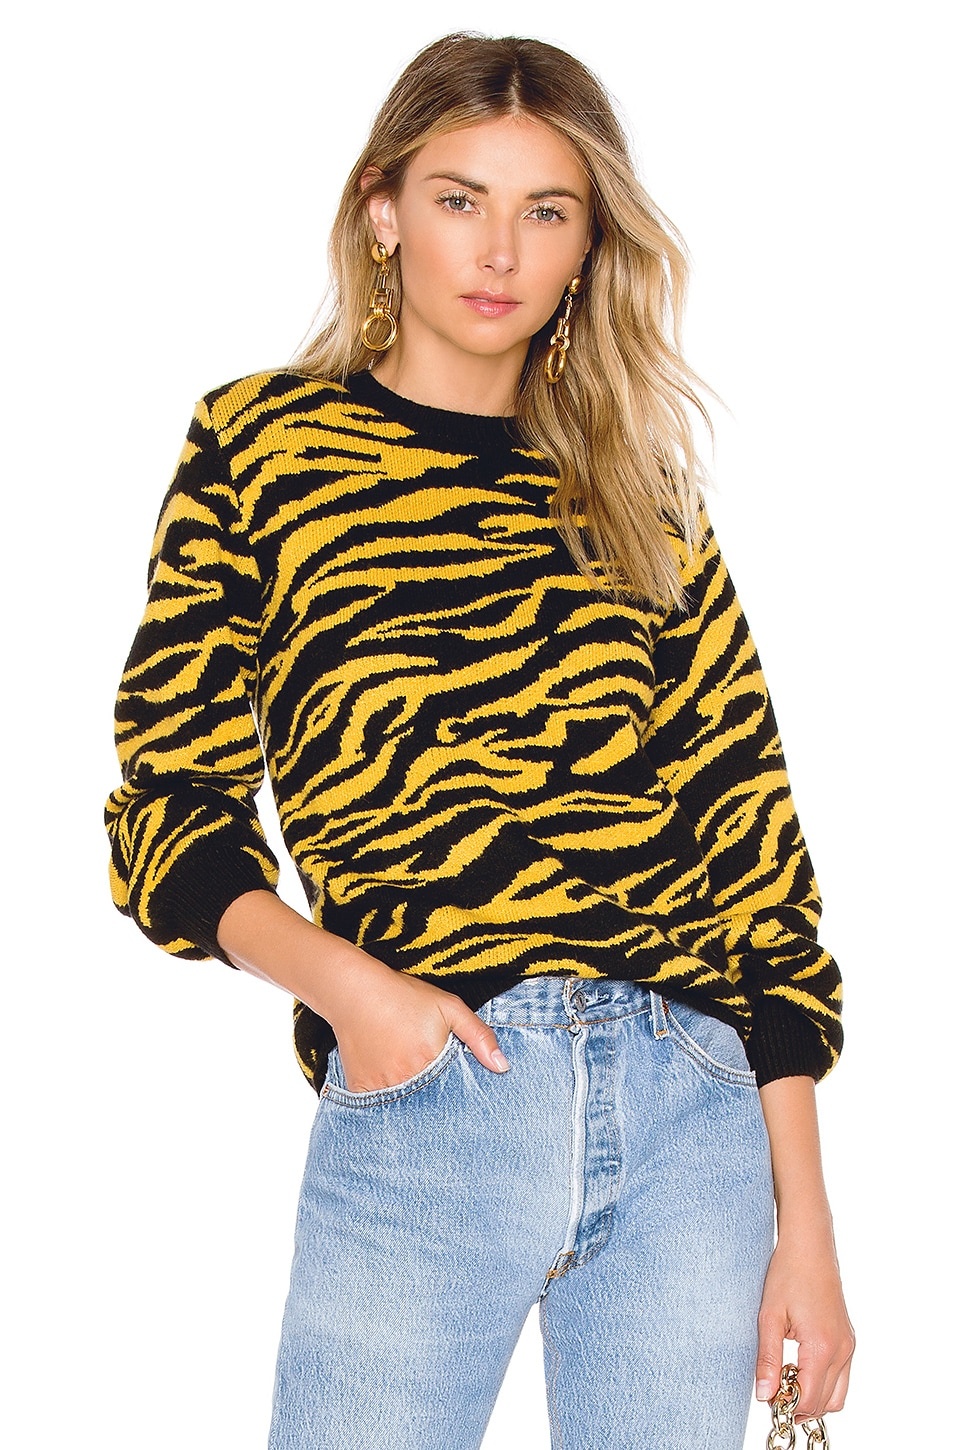 HOUSE OF HARLOW 1960 X REVOLVE TIGER SWEATER